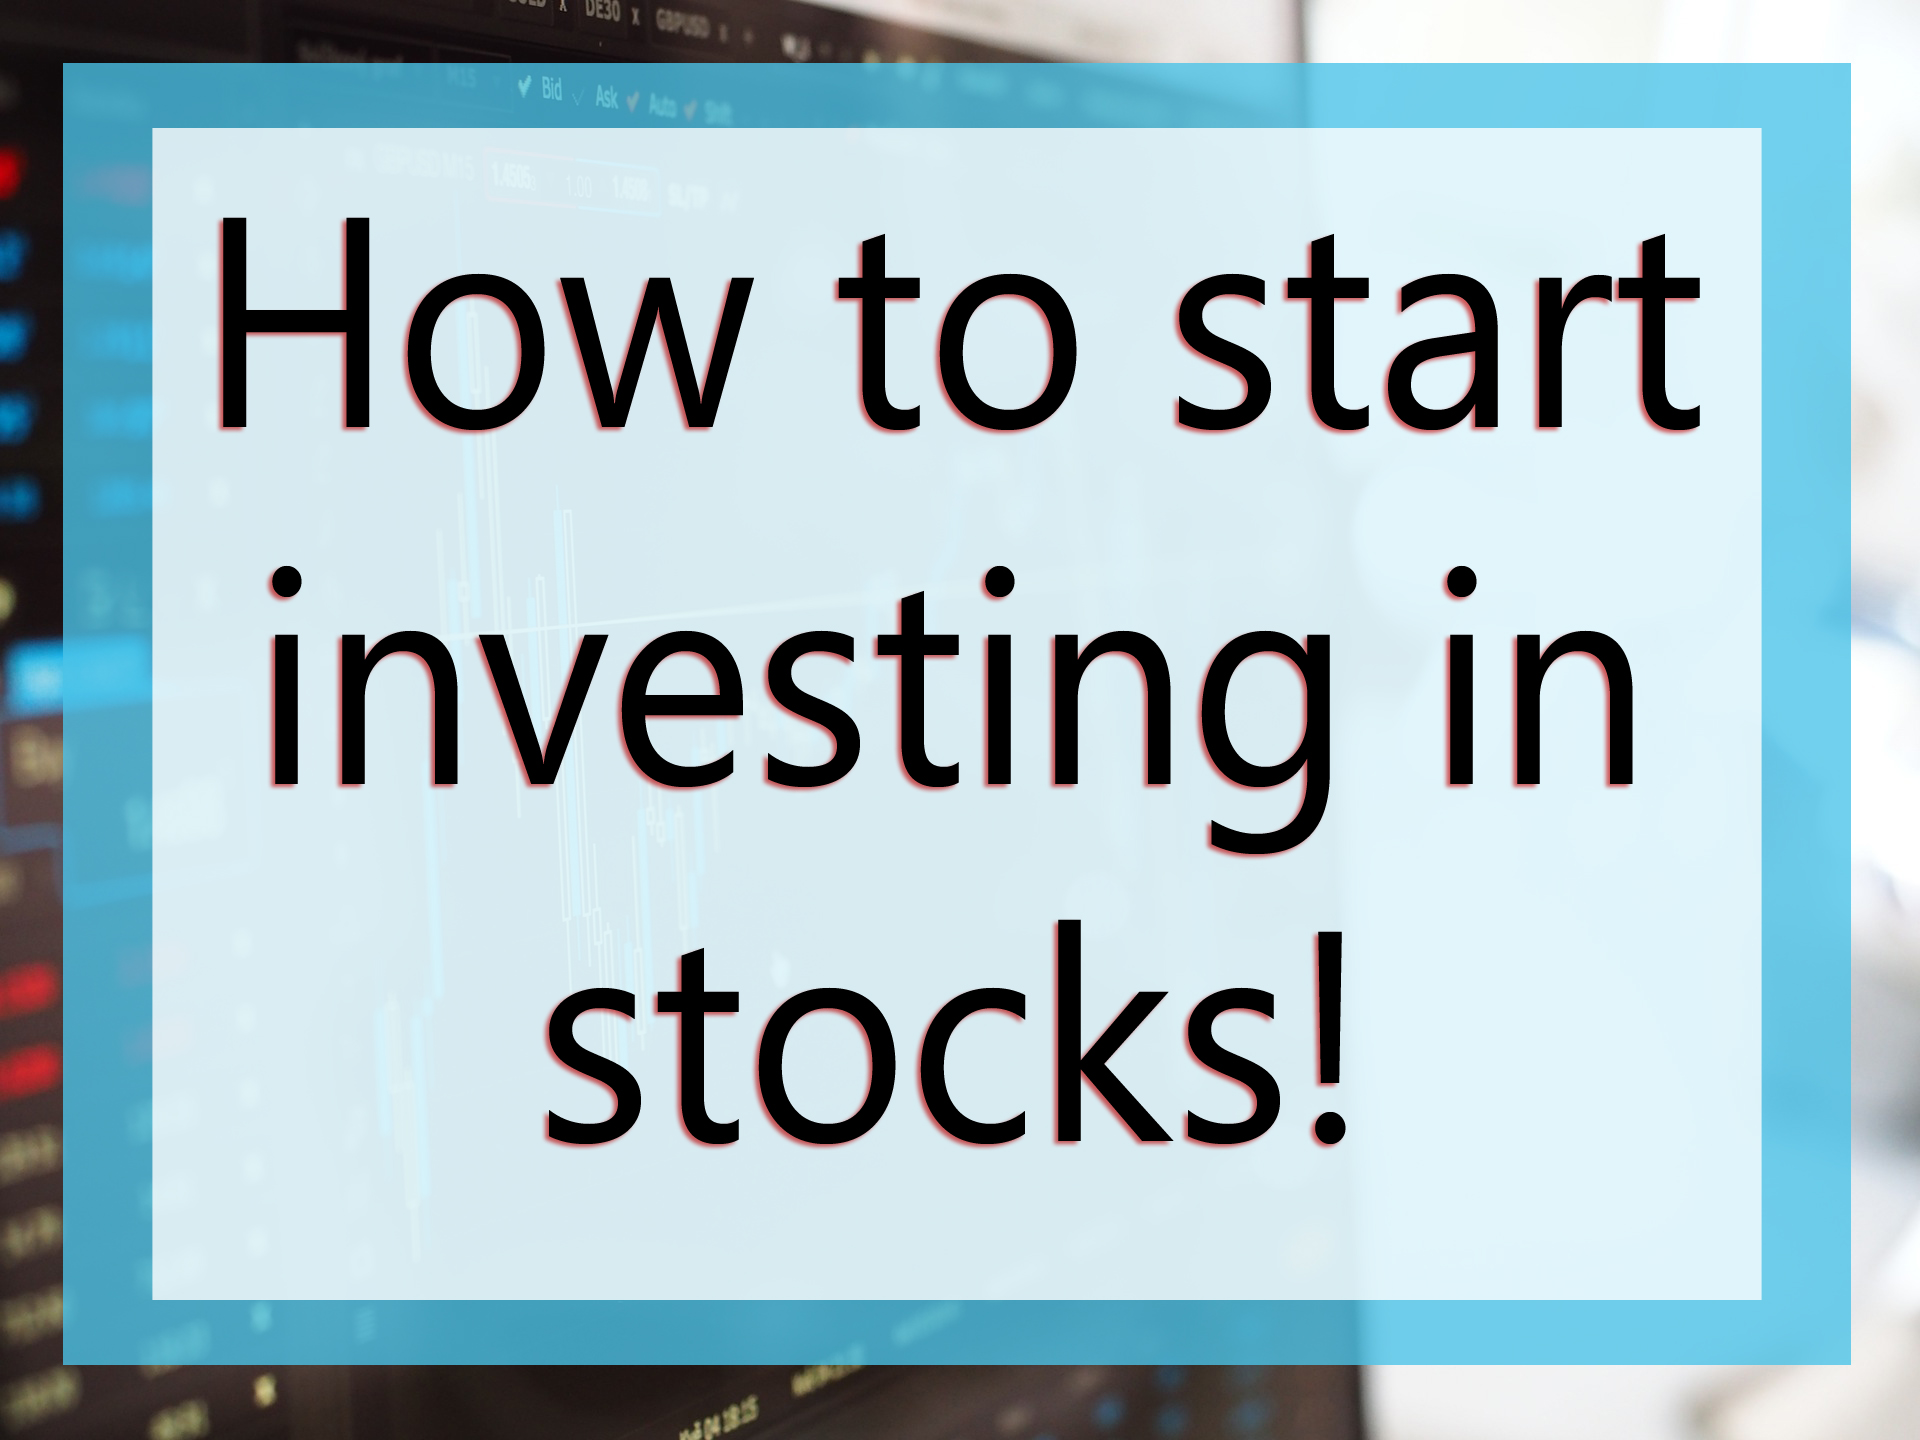 Howtostartinvestinginstocks